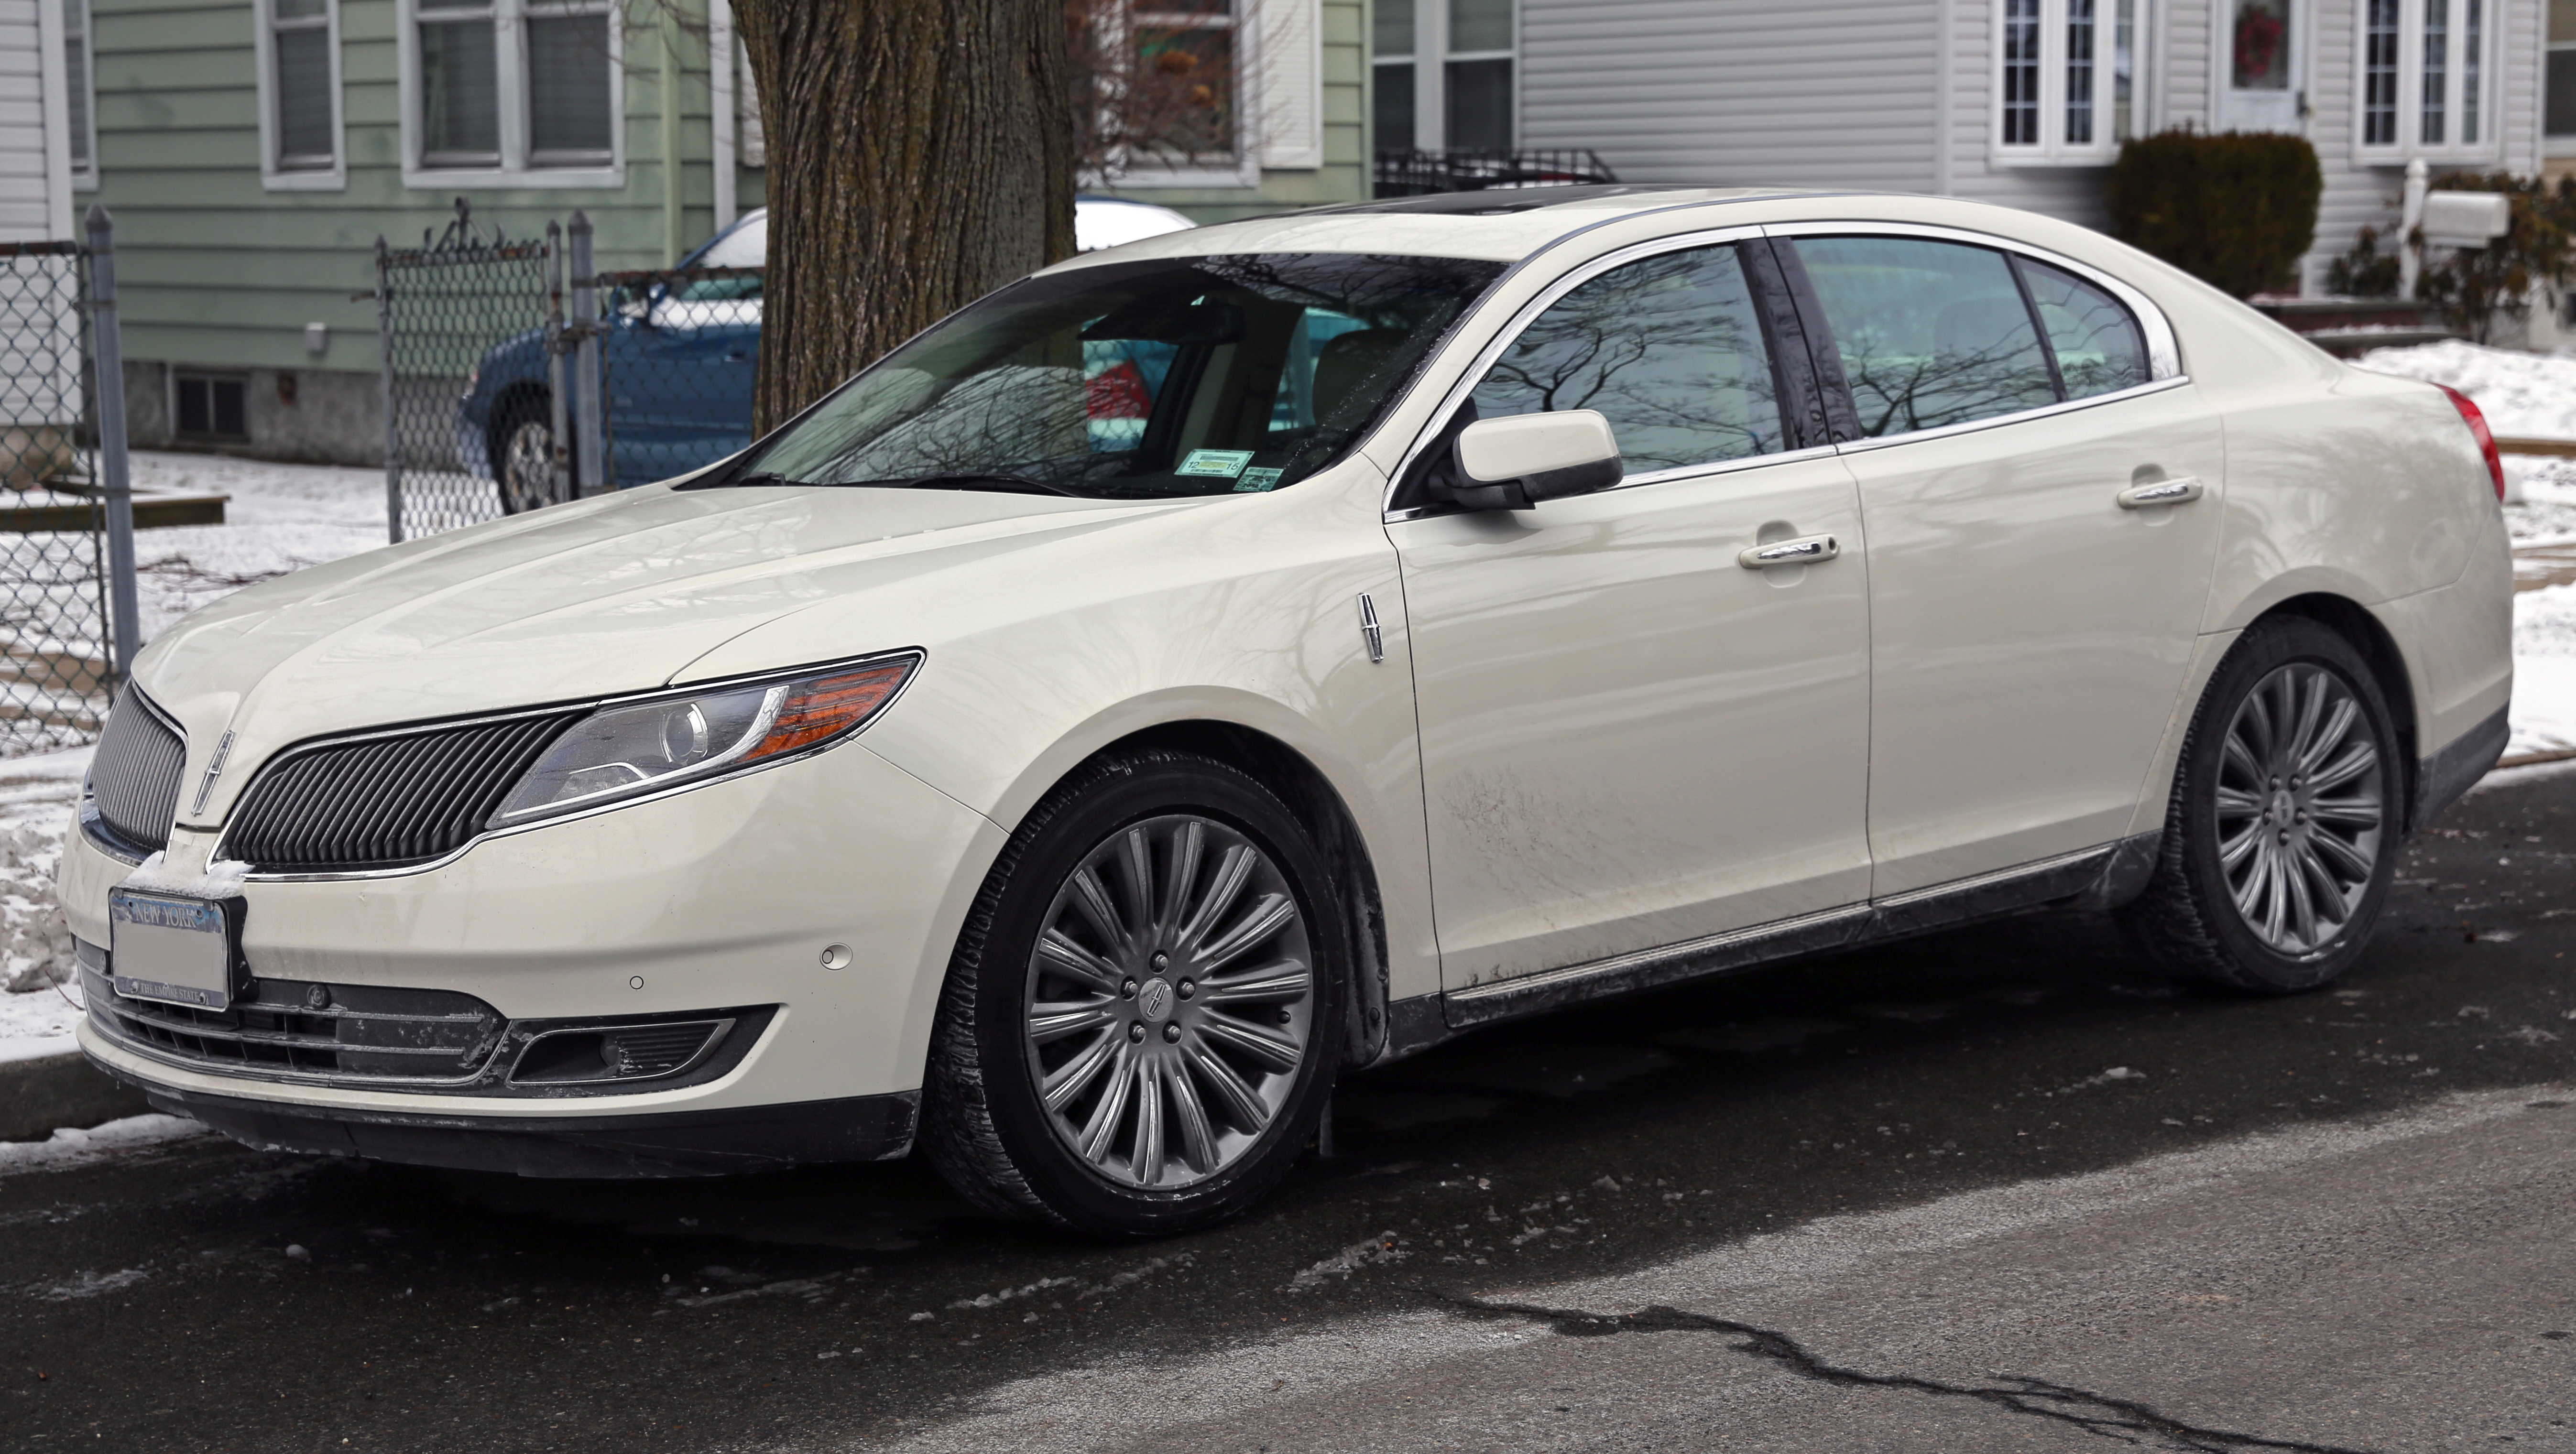 file 2013 lincoln mks awd facelift front wikimedia commons. Black Bedroom Furniture Sets. Home Design Ideas